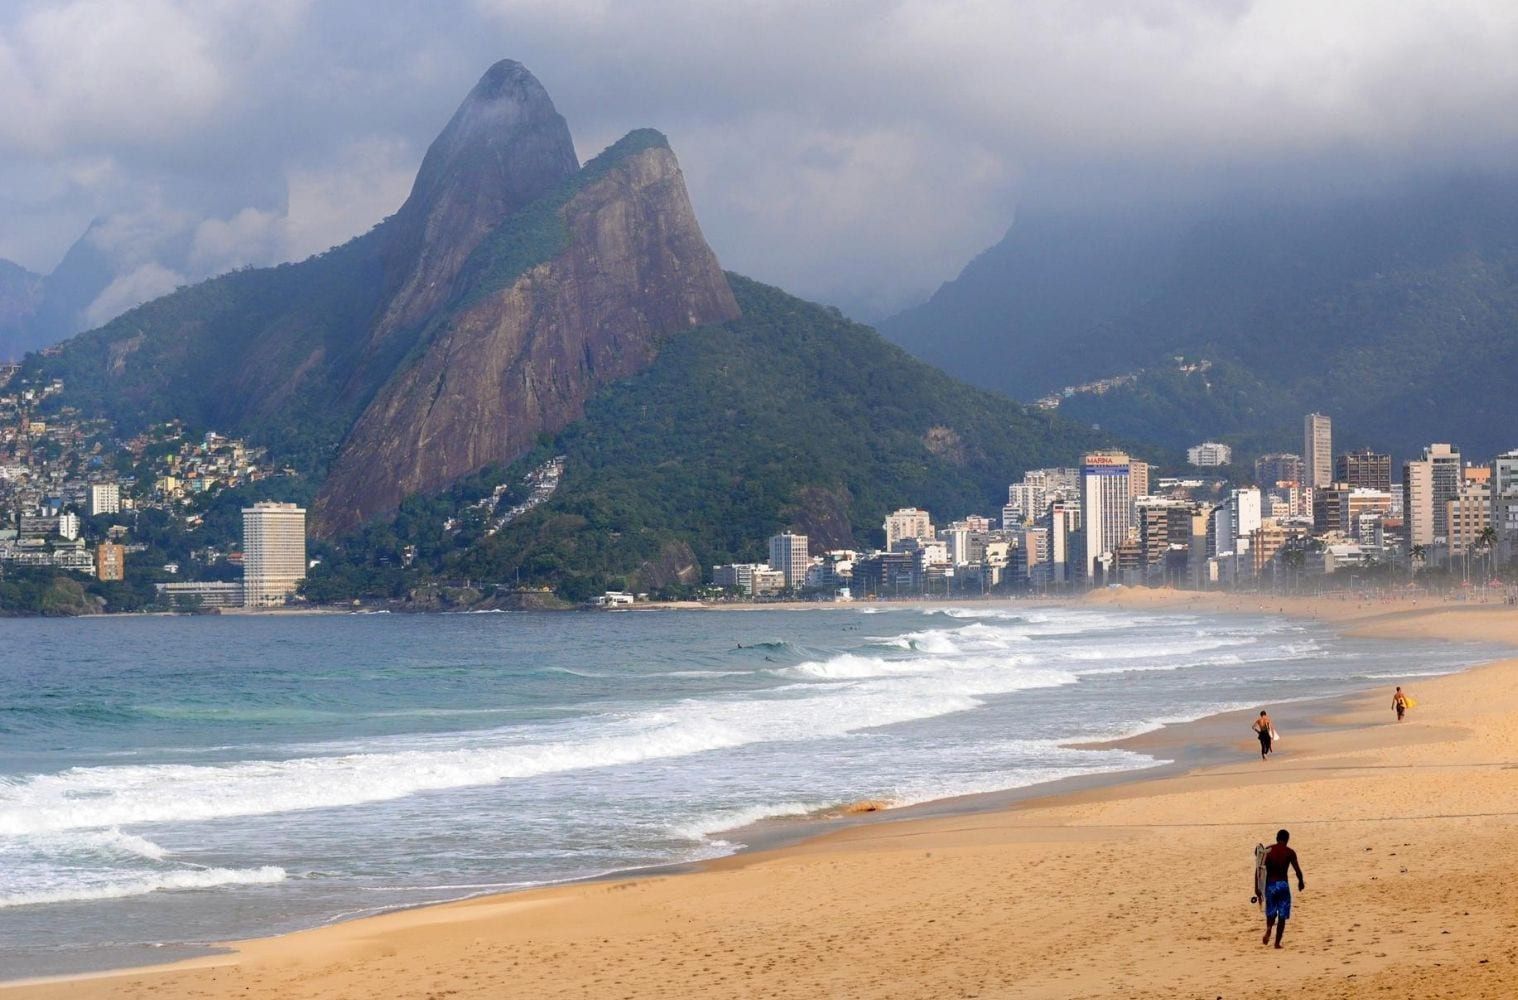 brazil reopen borders to tourism